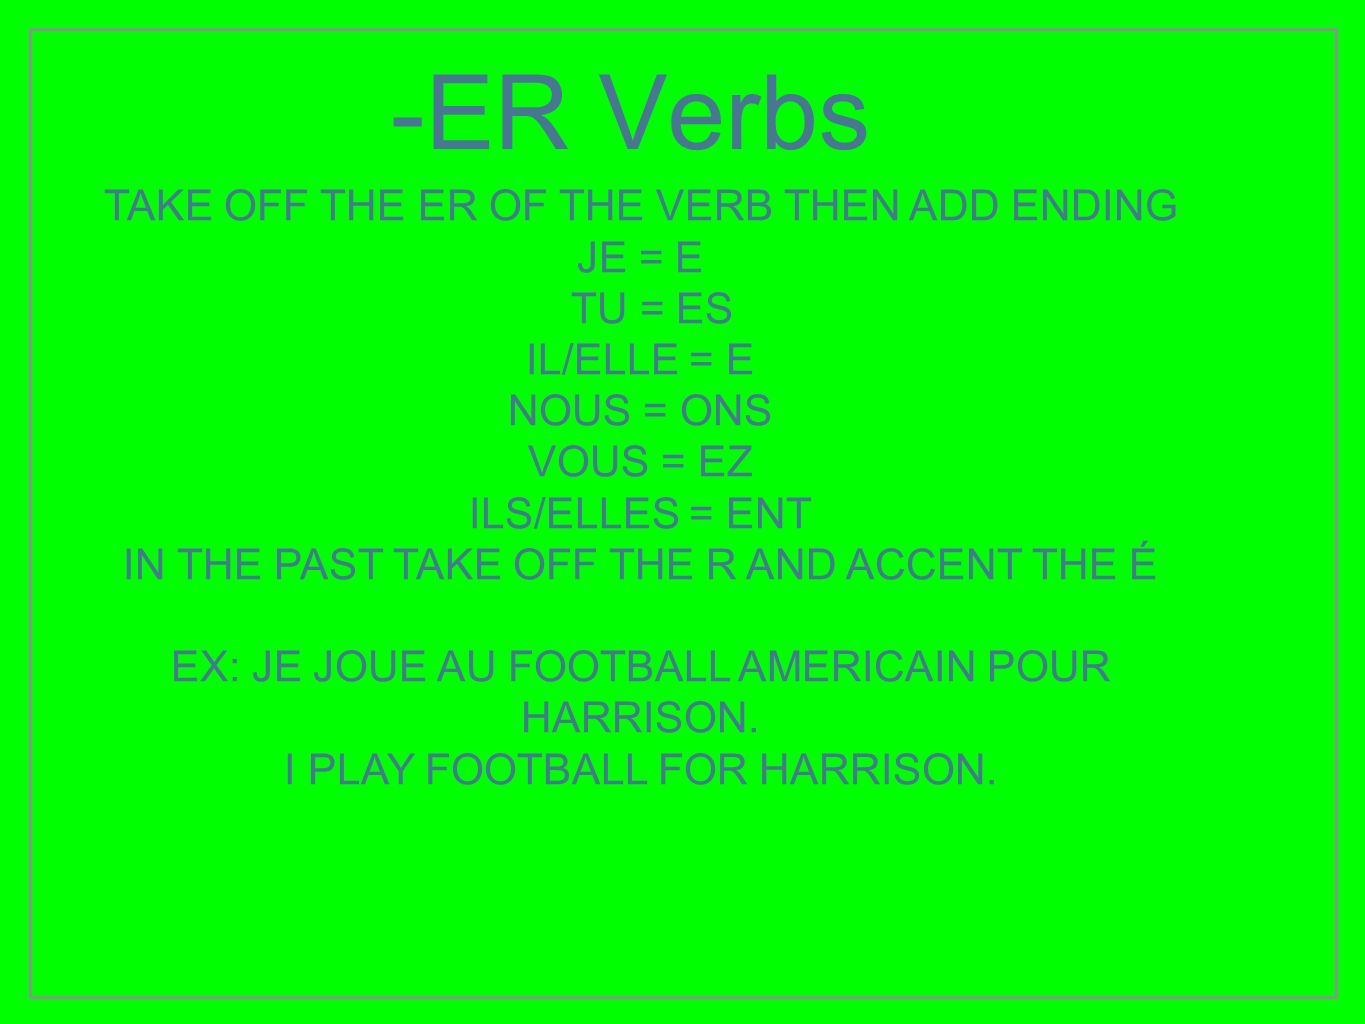 -ER Verbs TAKE OFF THE ER OF THE VERB THEN ADD ENDING JE = E TU = ES IL/ELLE = E NOUS = ONS VOUS = EZ ILS/ELLES = ENT IN THE PAST TAKE OFF THE R AND A